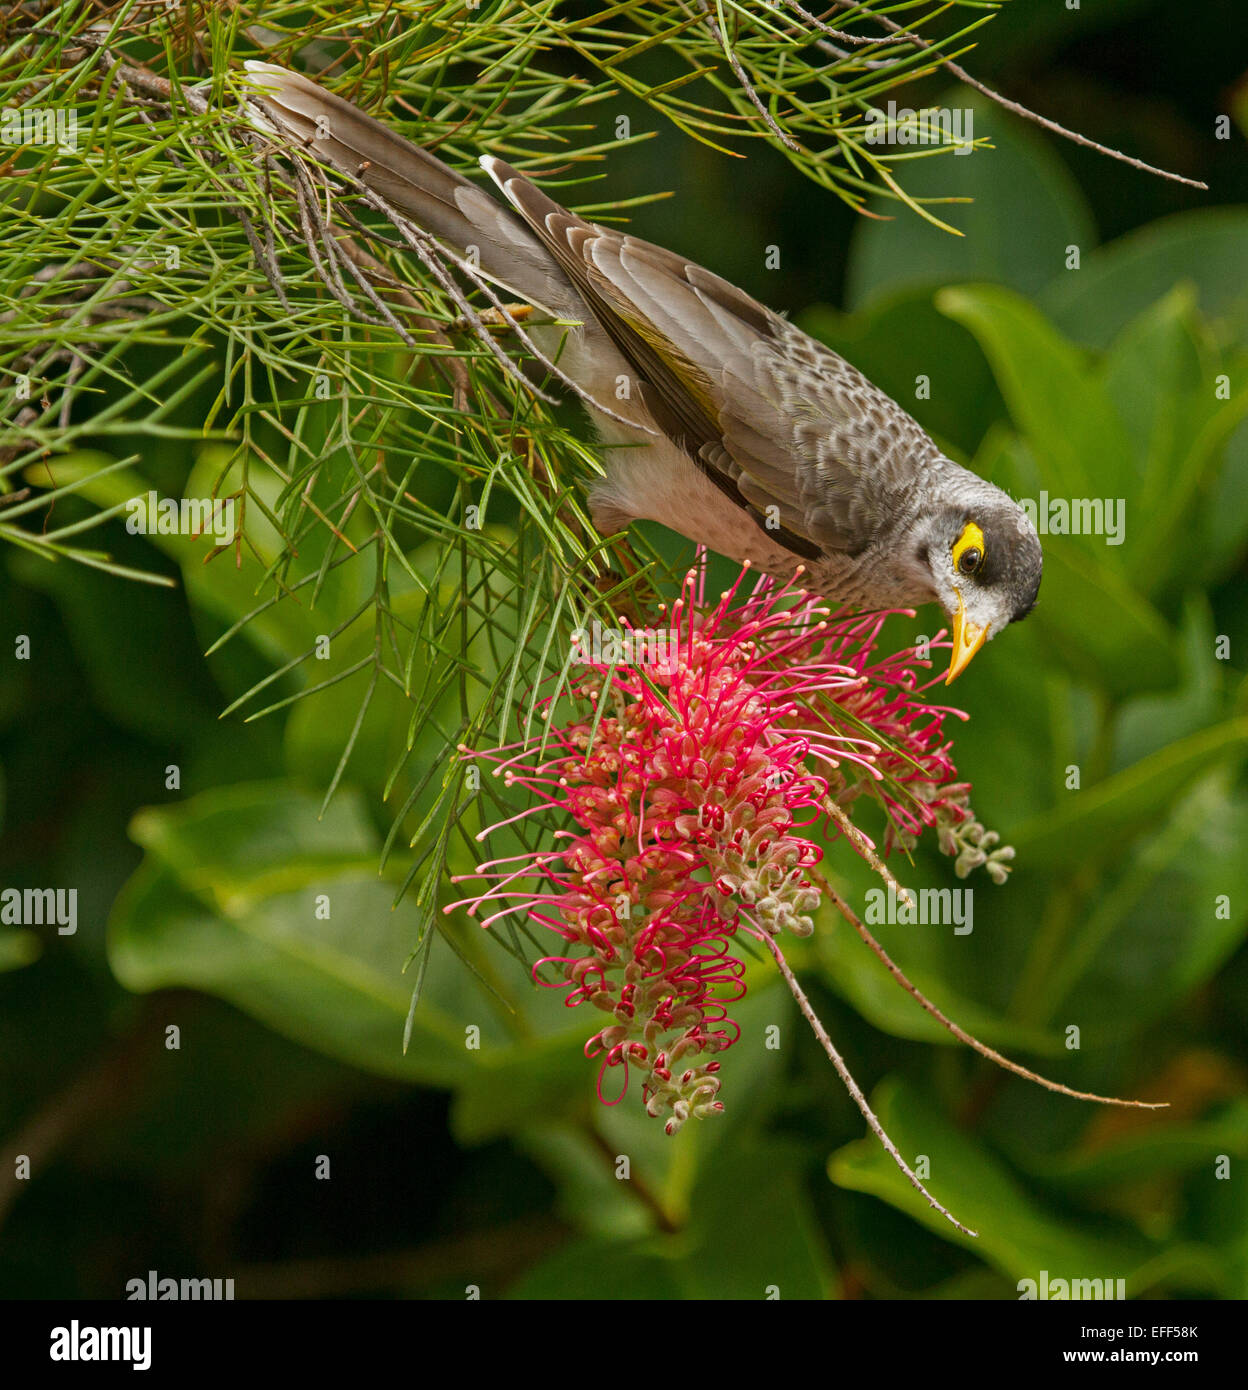 Australian Noisy miner bird, Manorina melanocephala feeding on nectar of red grevillea flower, against background - Stock Image